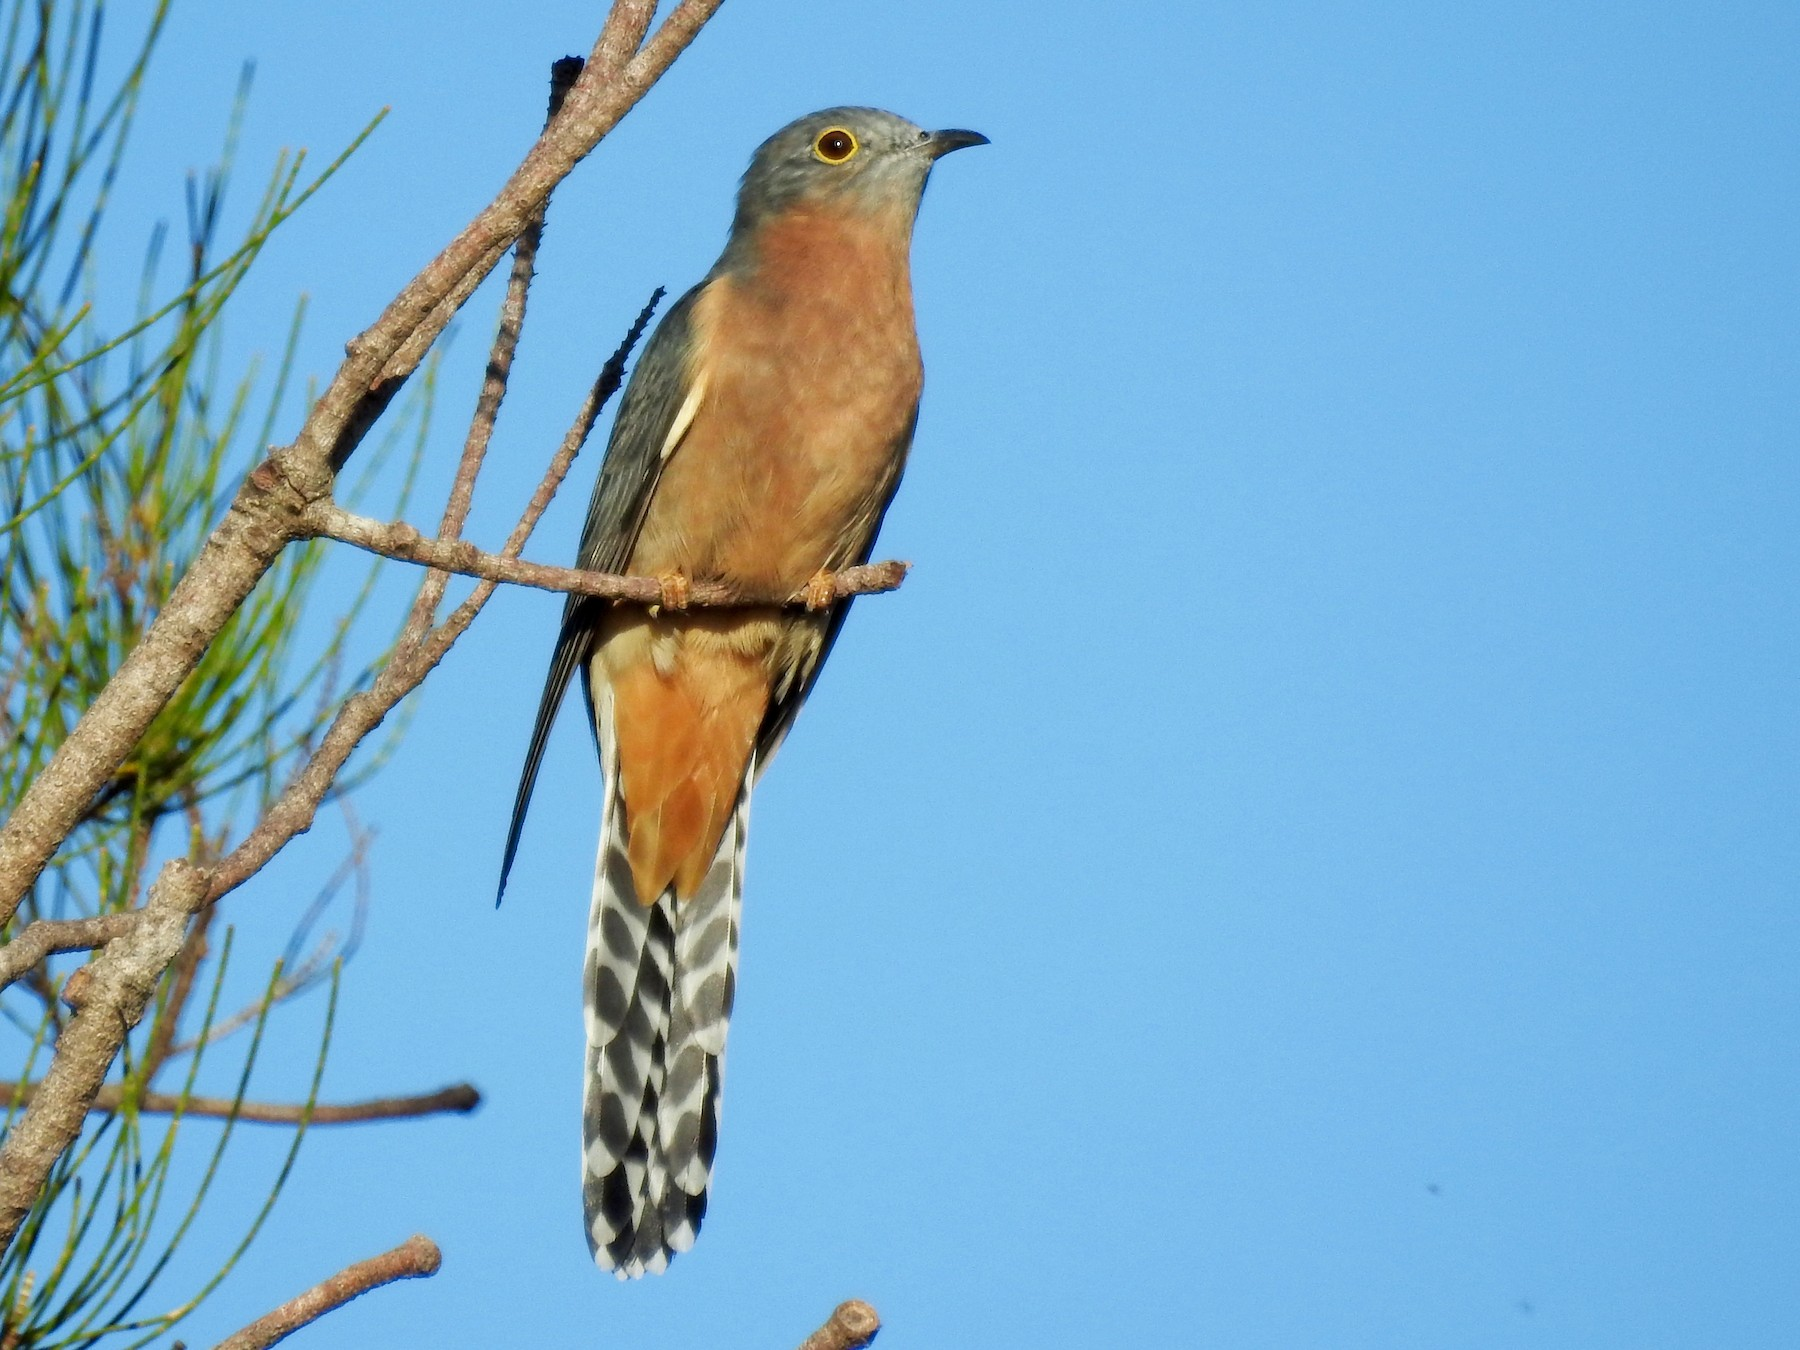 Fan-tailed Cuckoo - Michael Daley